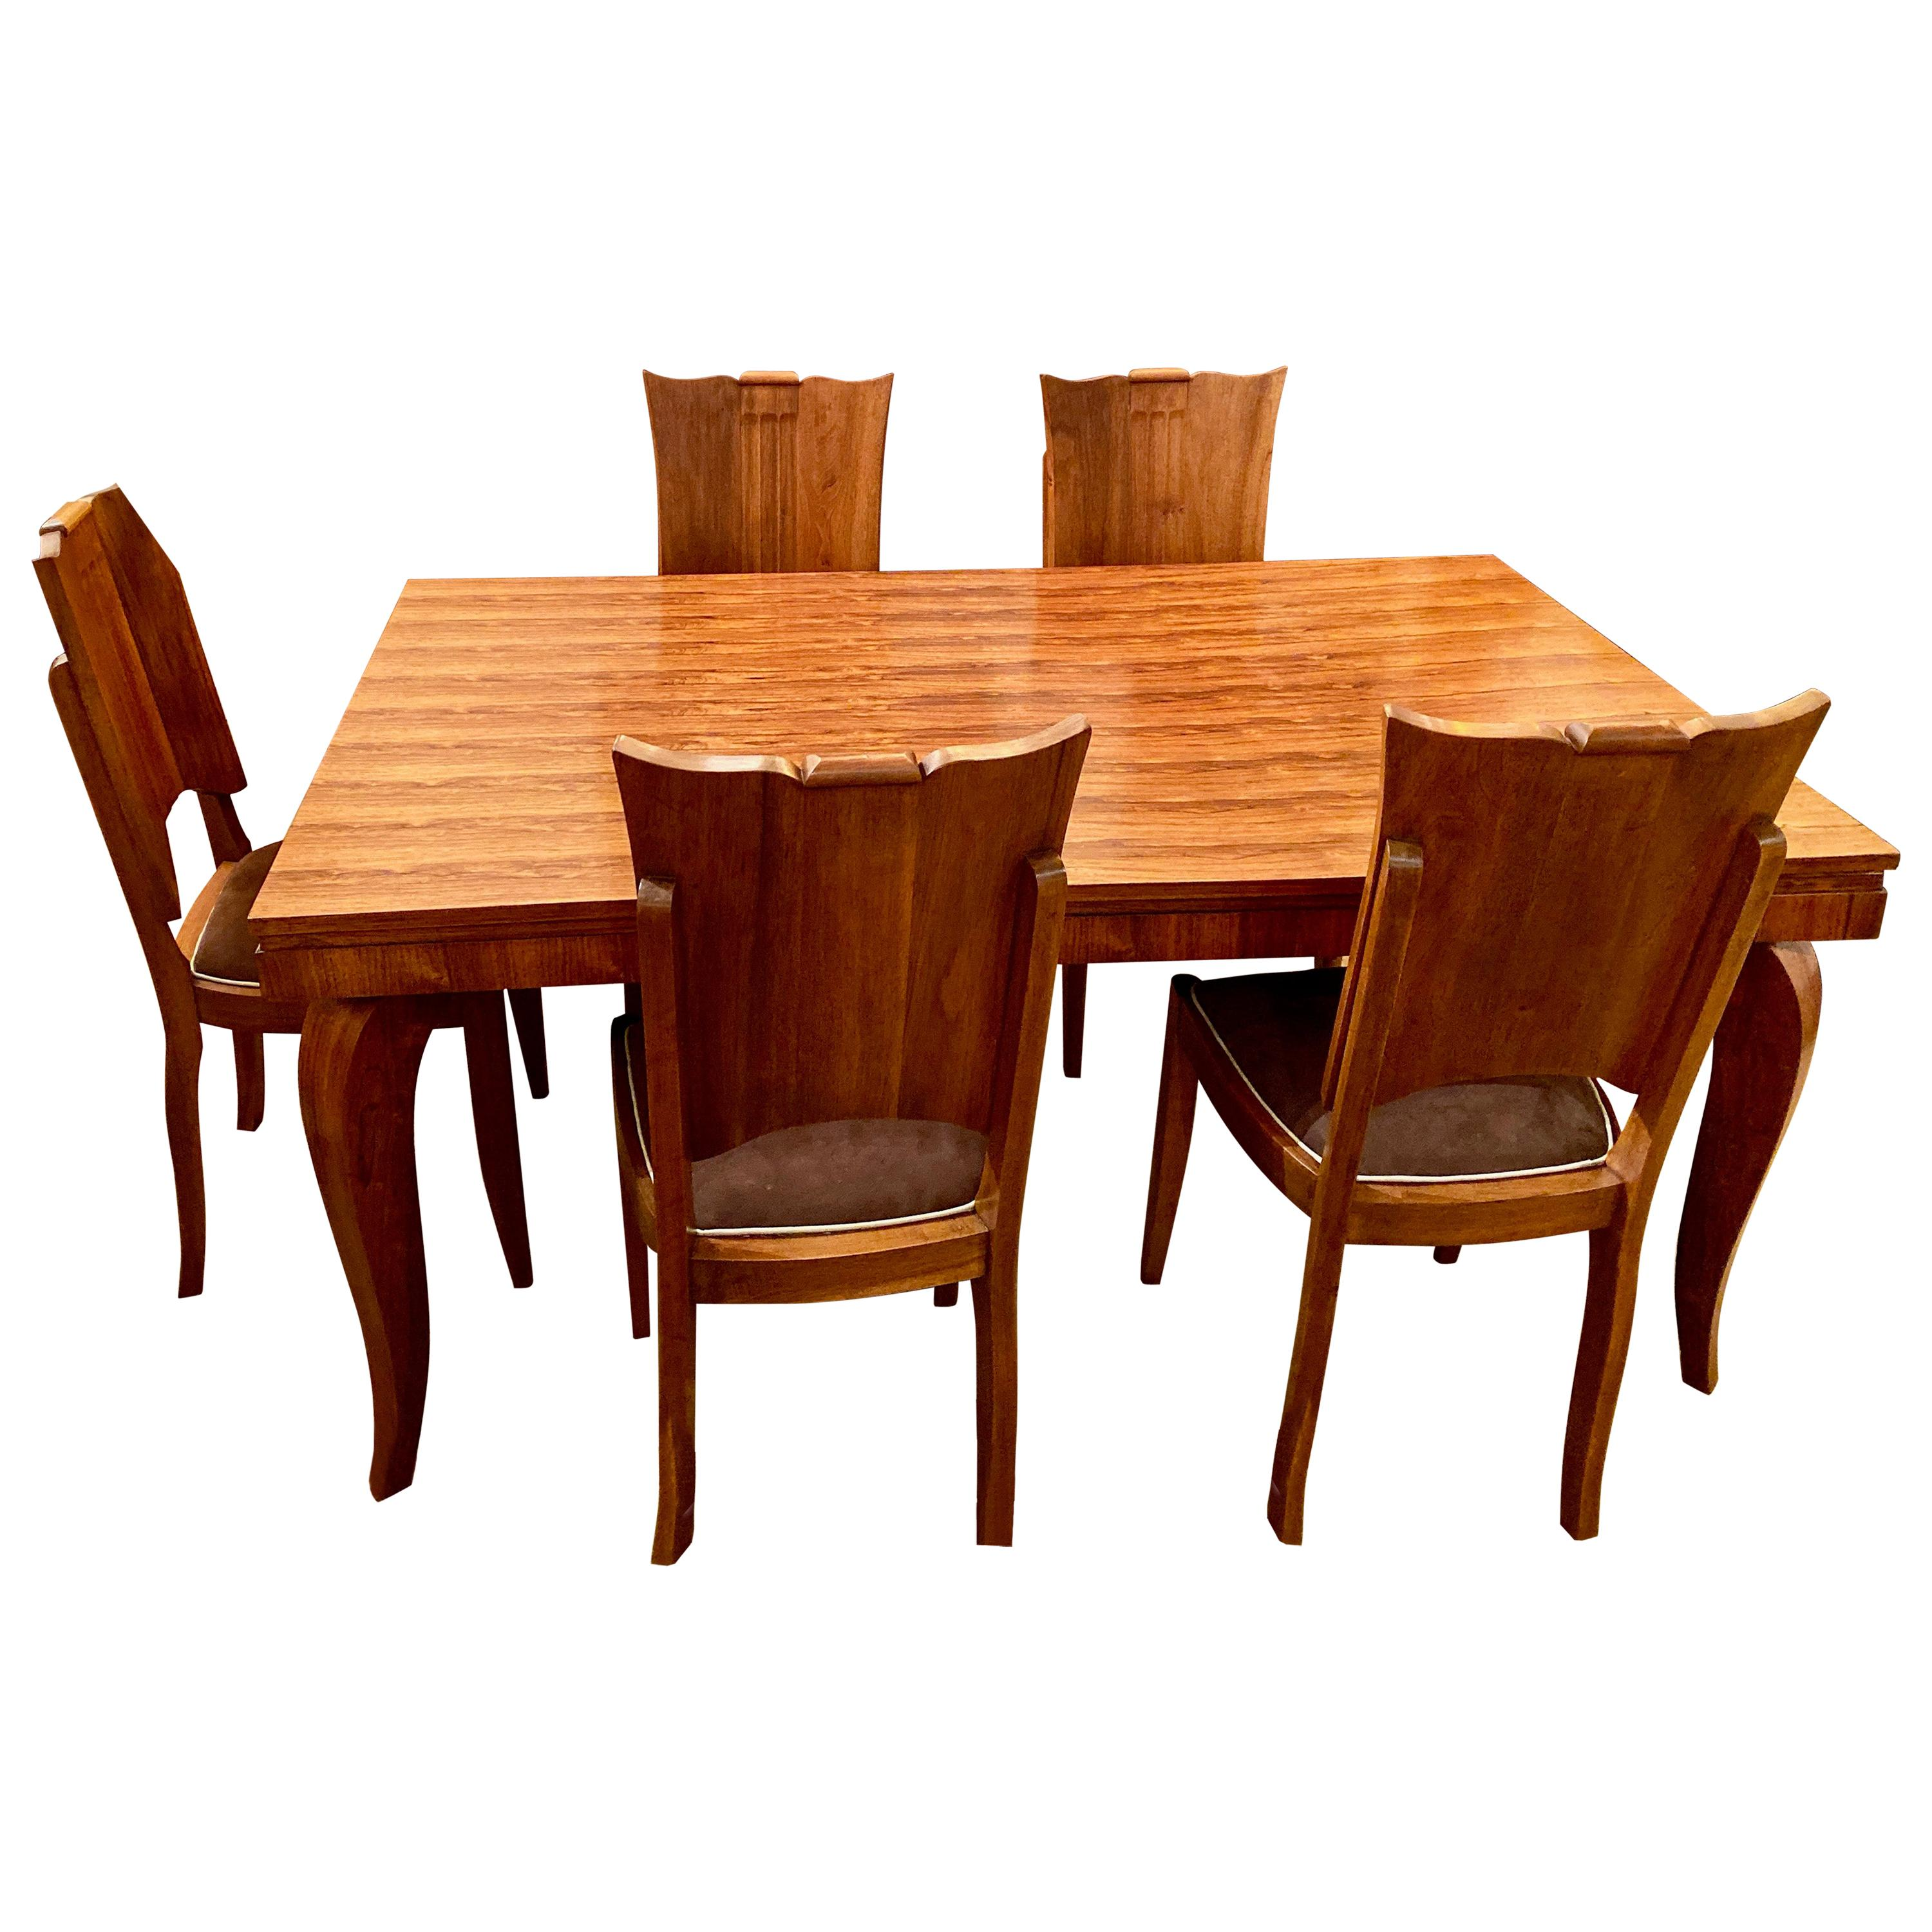 English Art Deco Oak 12 Piece Dining Suite of Table, Chairs & Sideboard